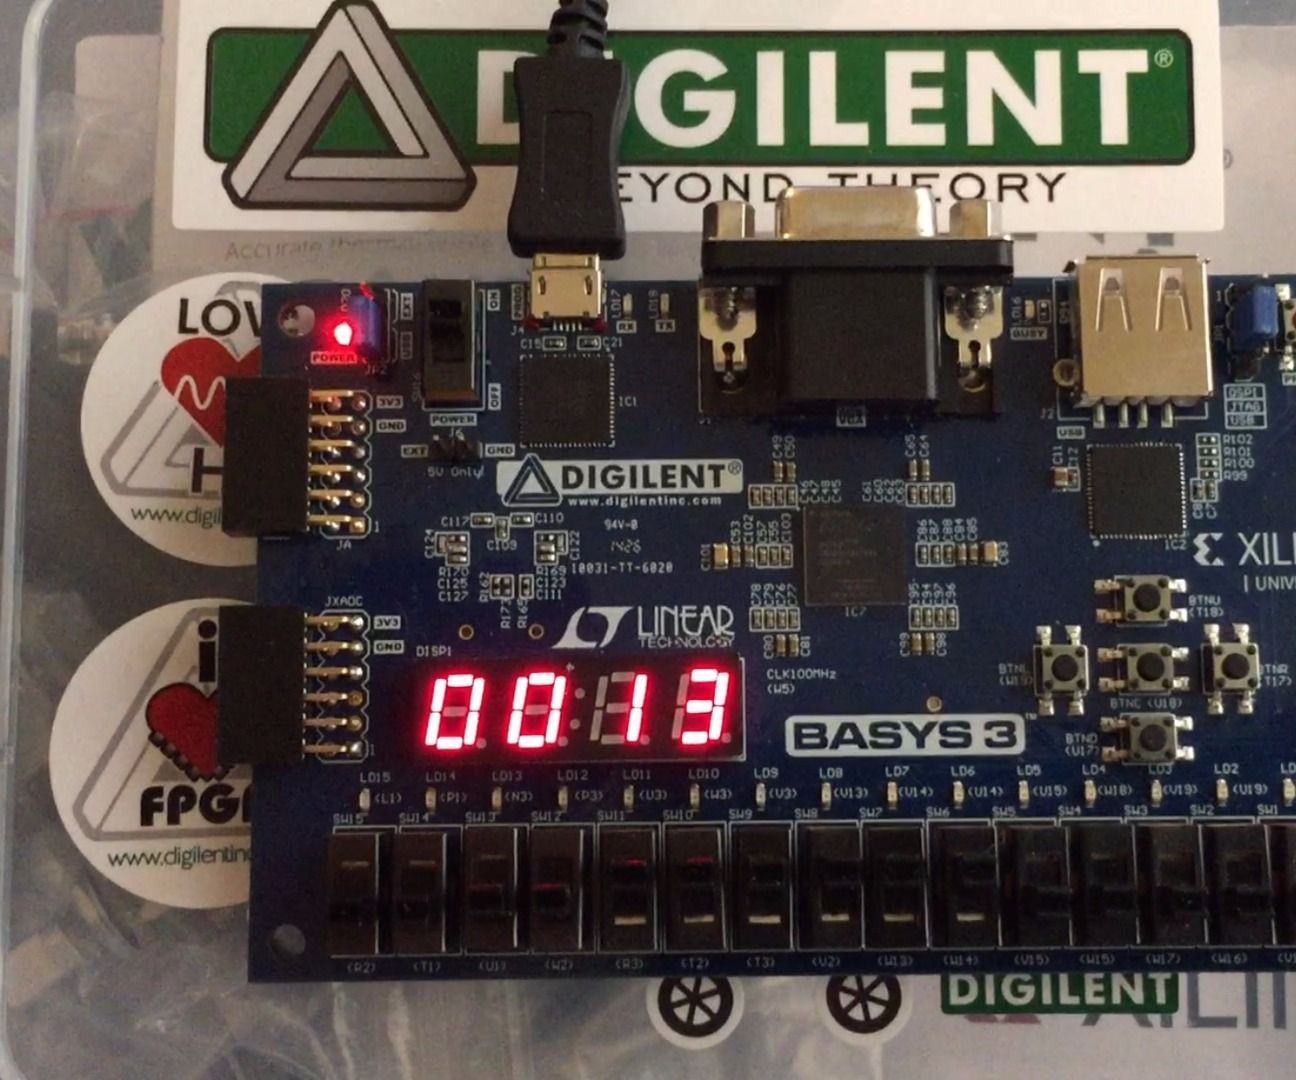 How to Use Verilog and Basys 3 to Do Stop Watch | Product